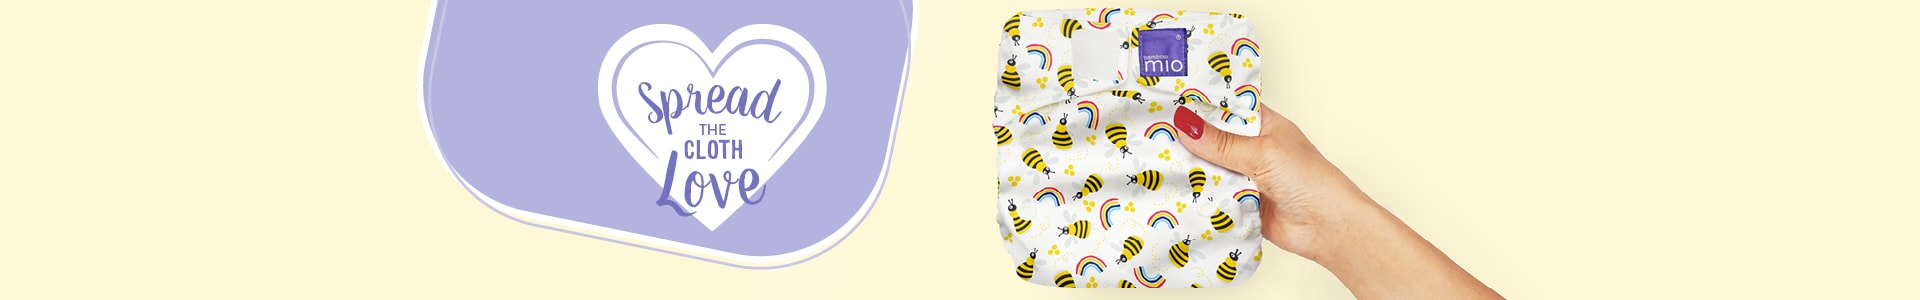 Bambino Mio refer a friend page banner with a hand holding a reusable nappy